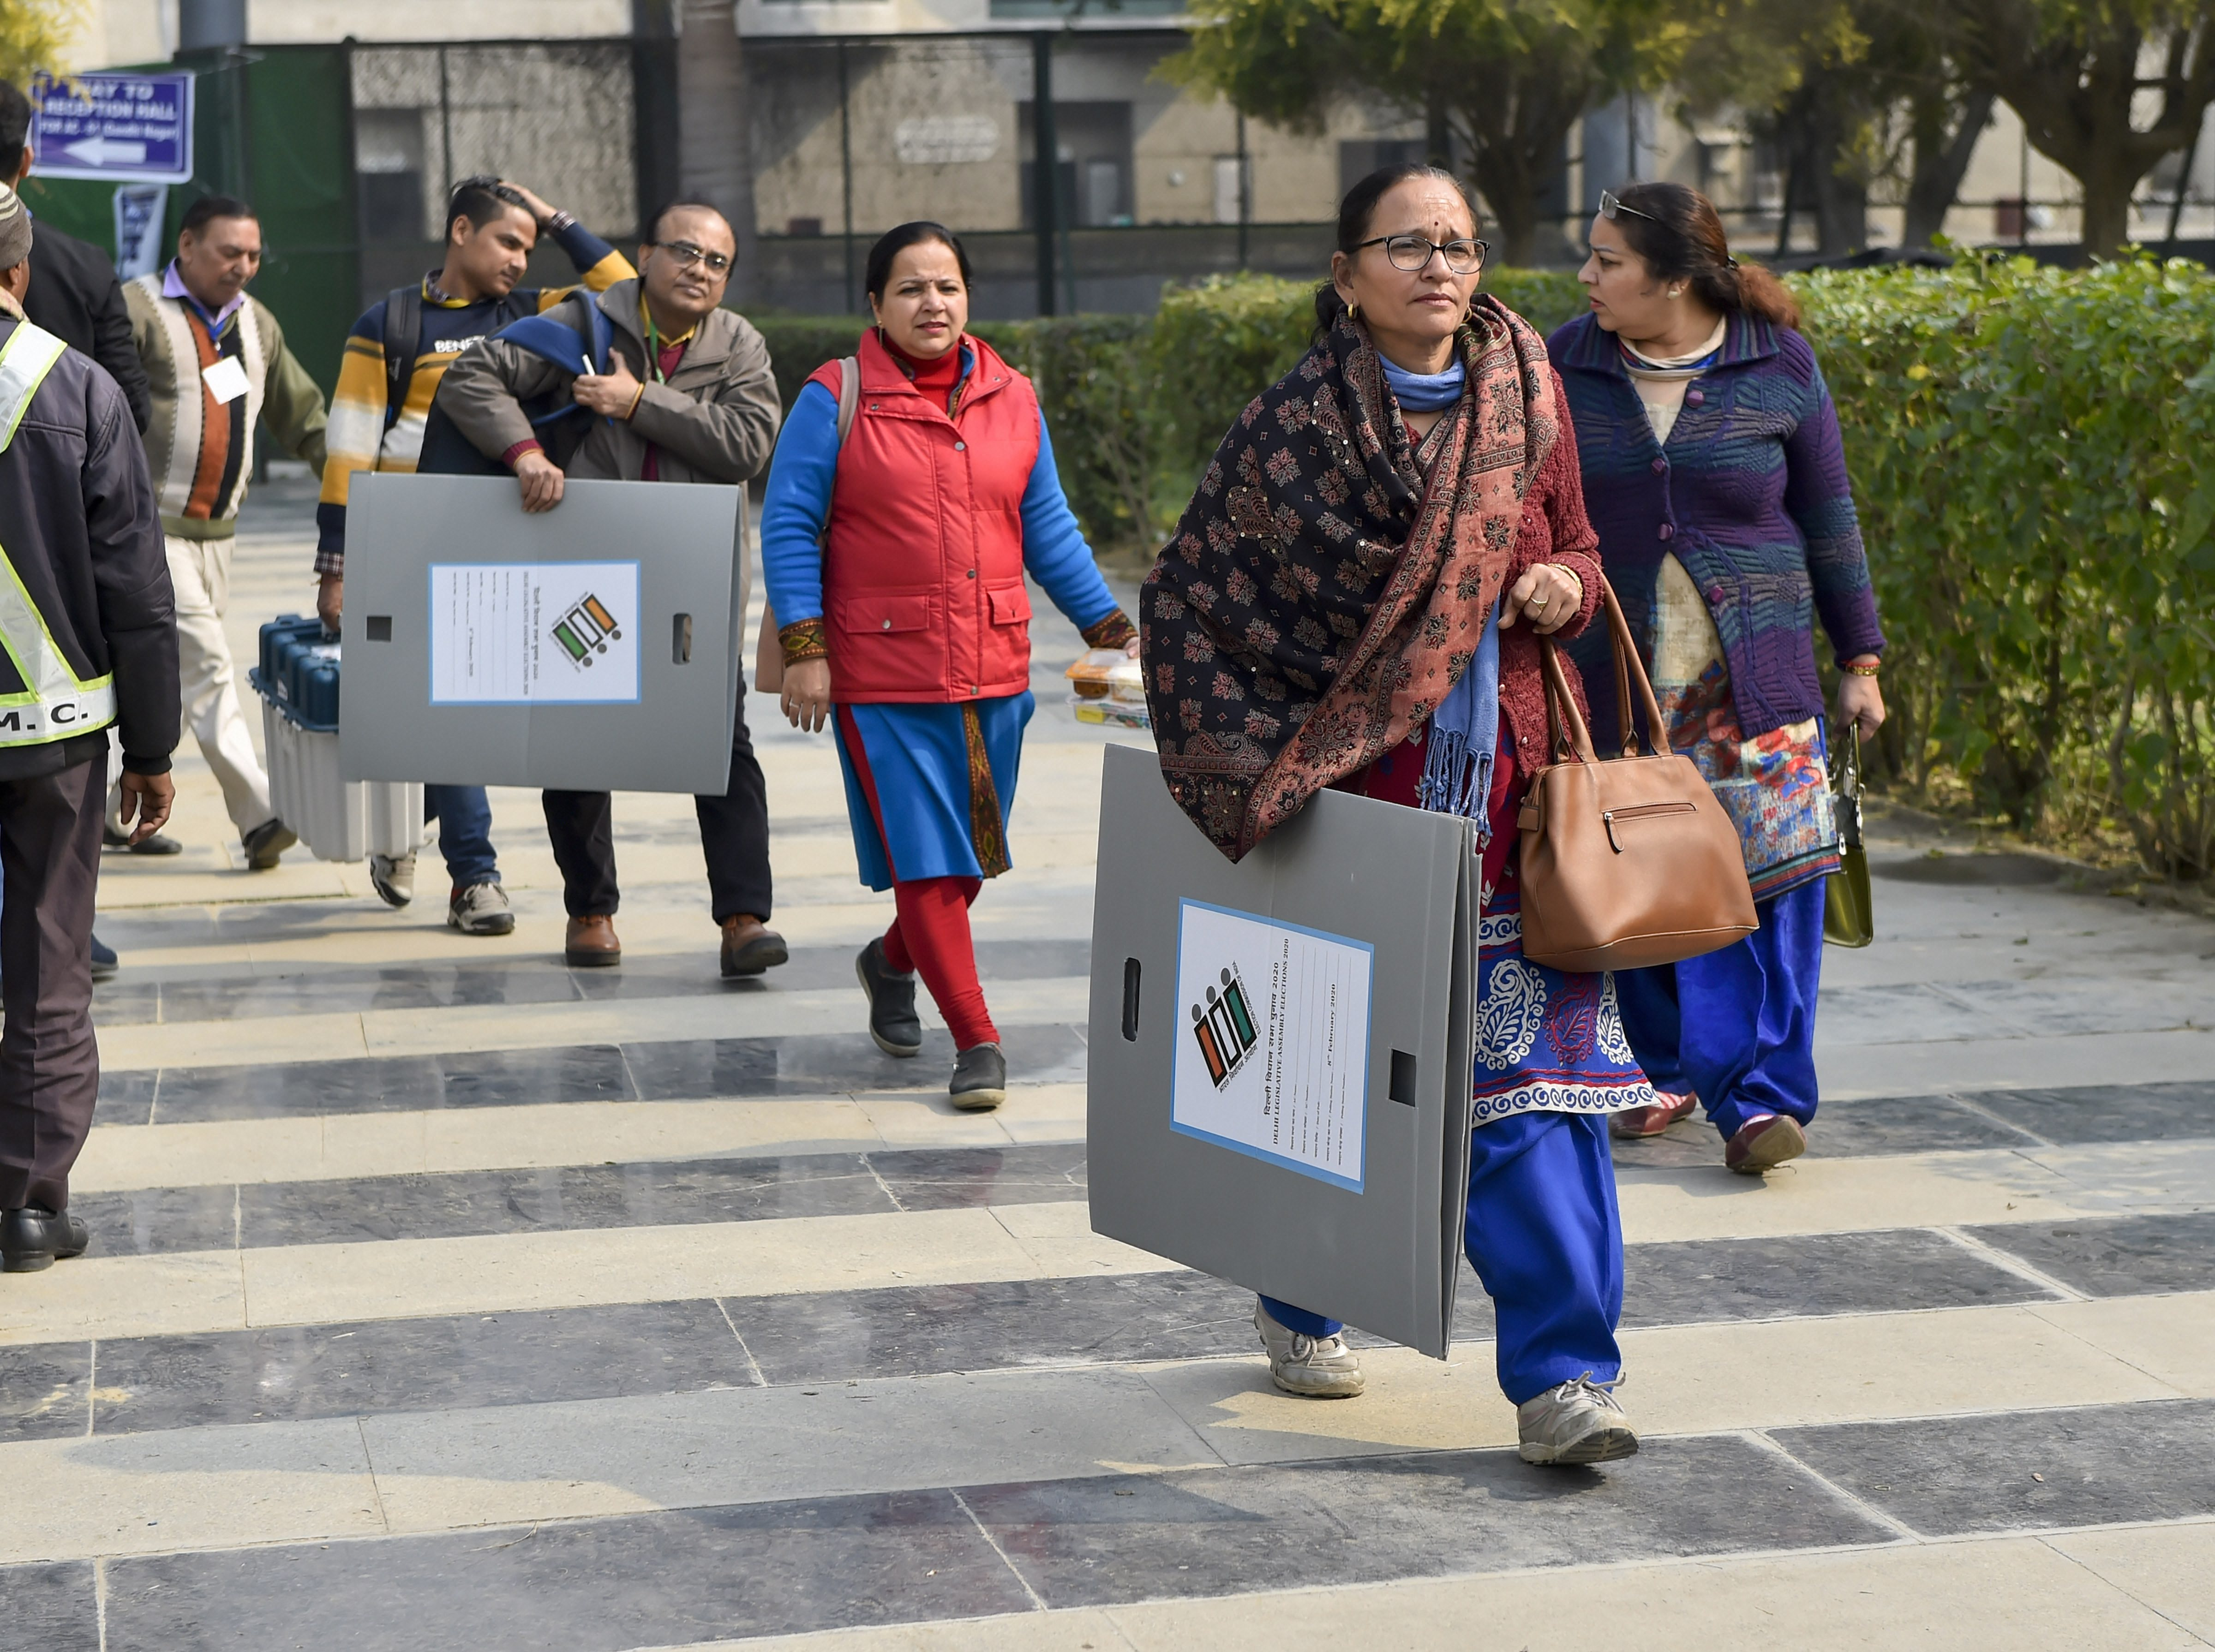 Polling officers carry EVM machines and other polling material as they leave for their polling stations on the eve of the Delhi Assembly elections at Akshardham in New Delhi, Friday, February 7, 2020